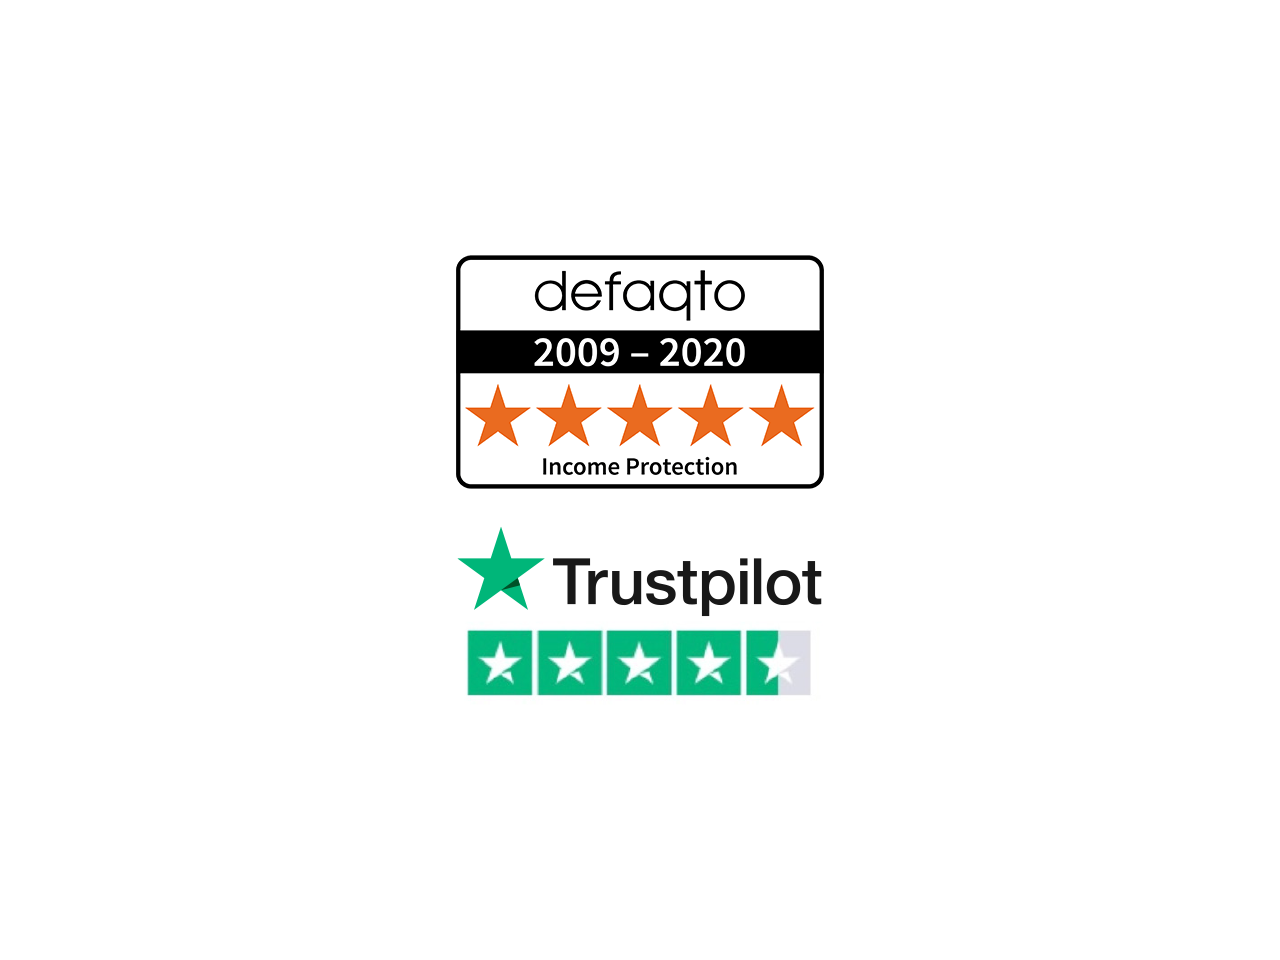 Vitality's income protection cover is rated 5-star Defaqto